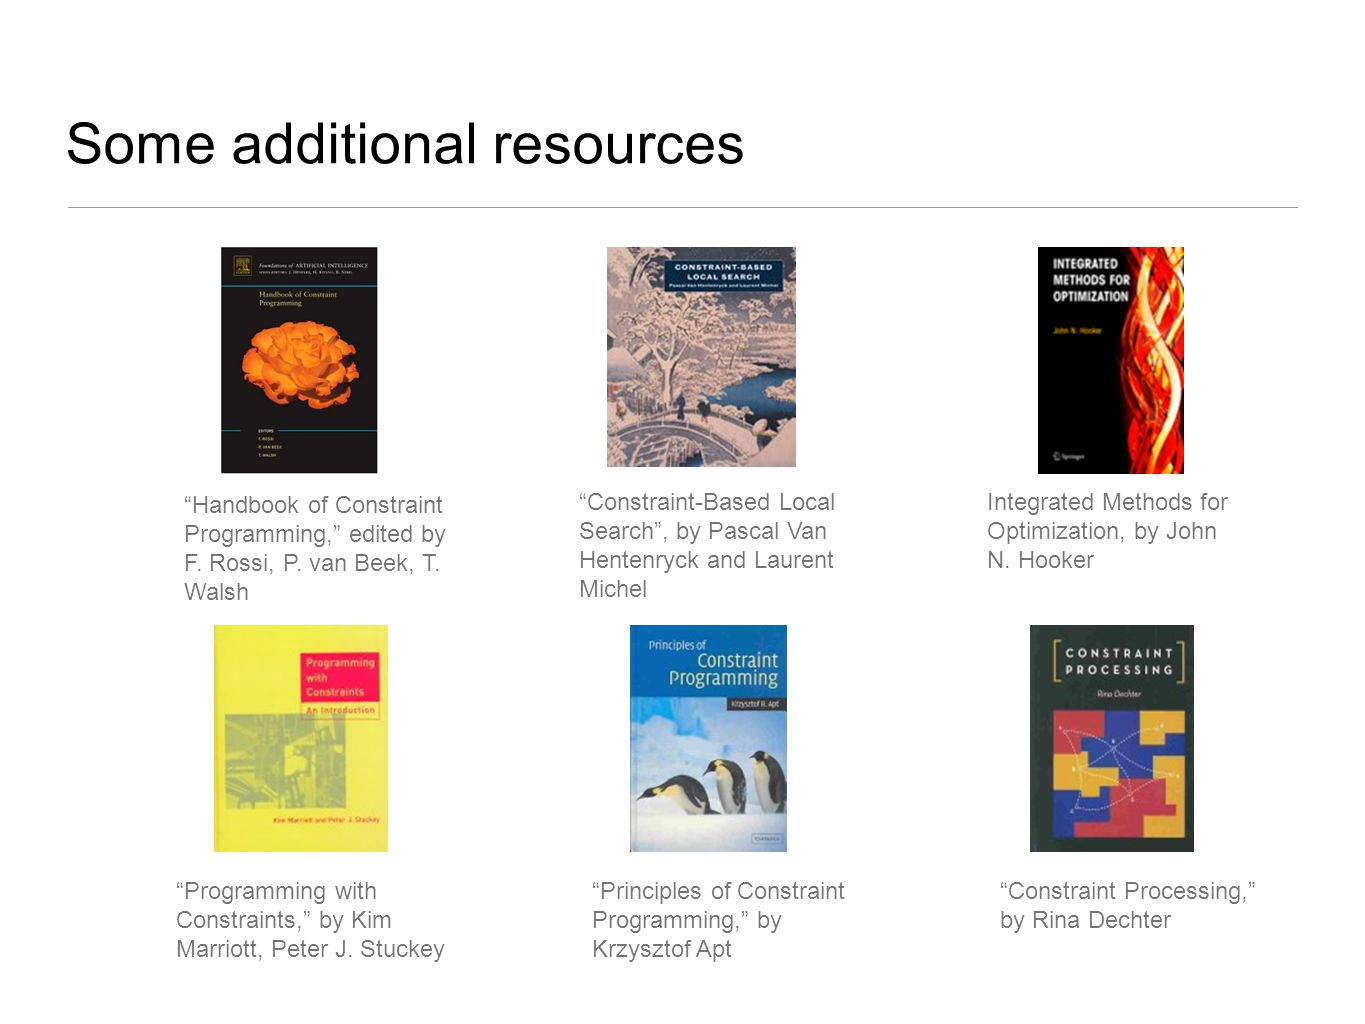 Some additional resources